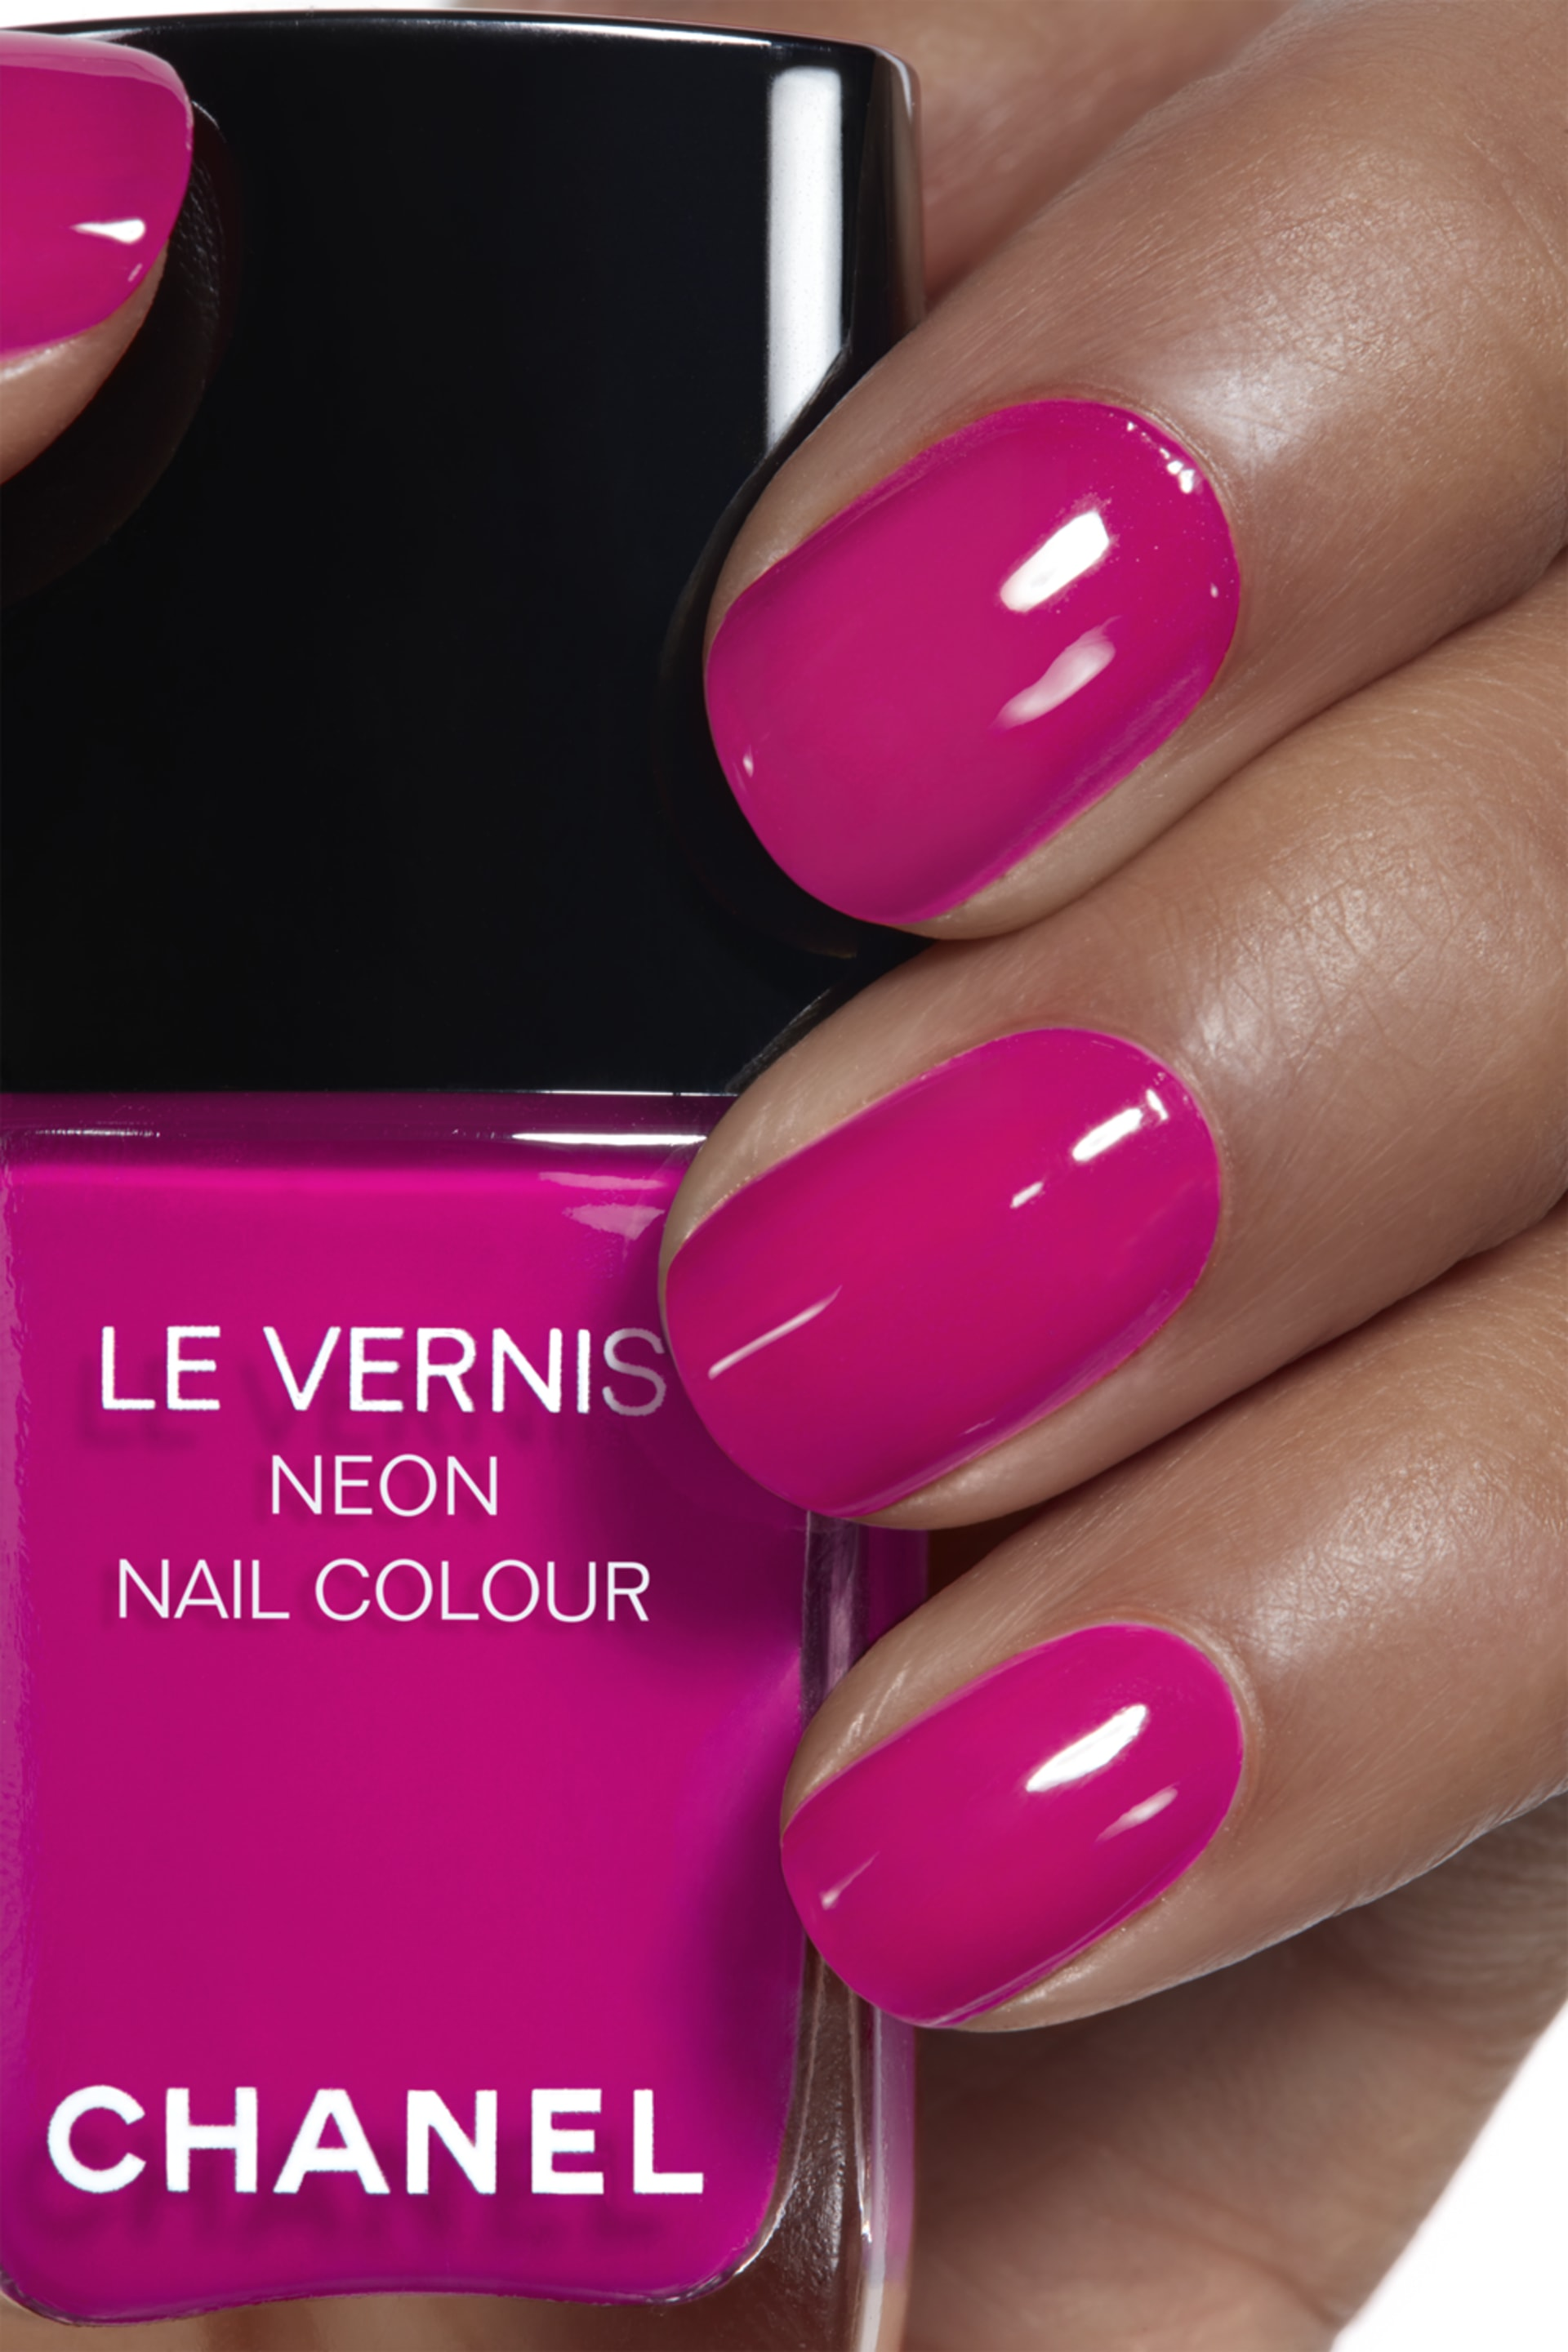 Application makeup visual 1 - LE VERNIS NEON NAIL COLOUR 648 - TECHNO BLOOM